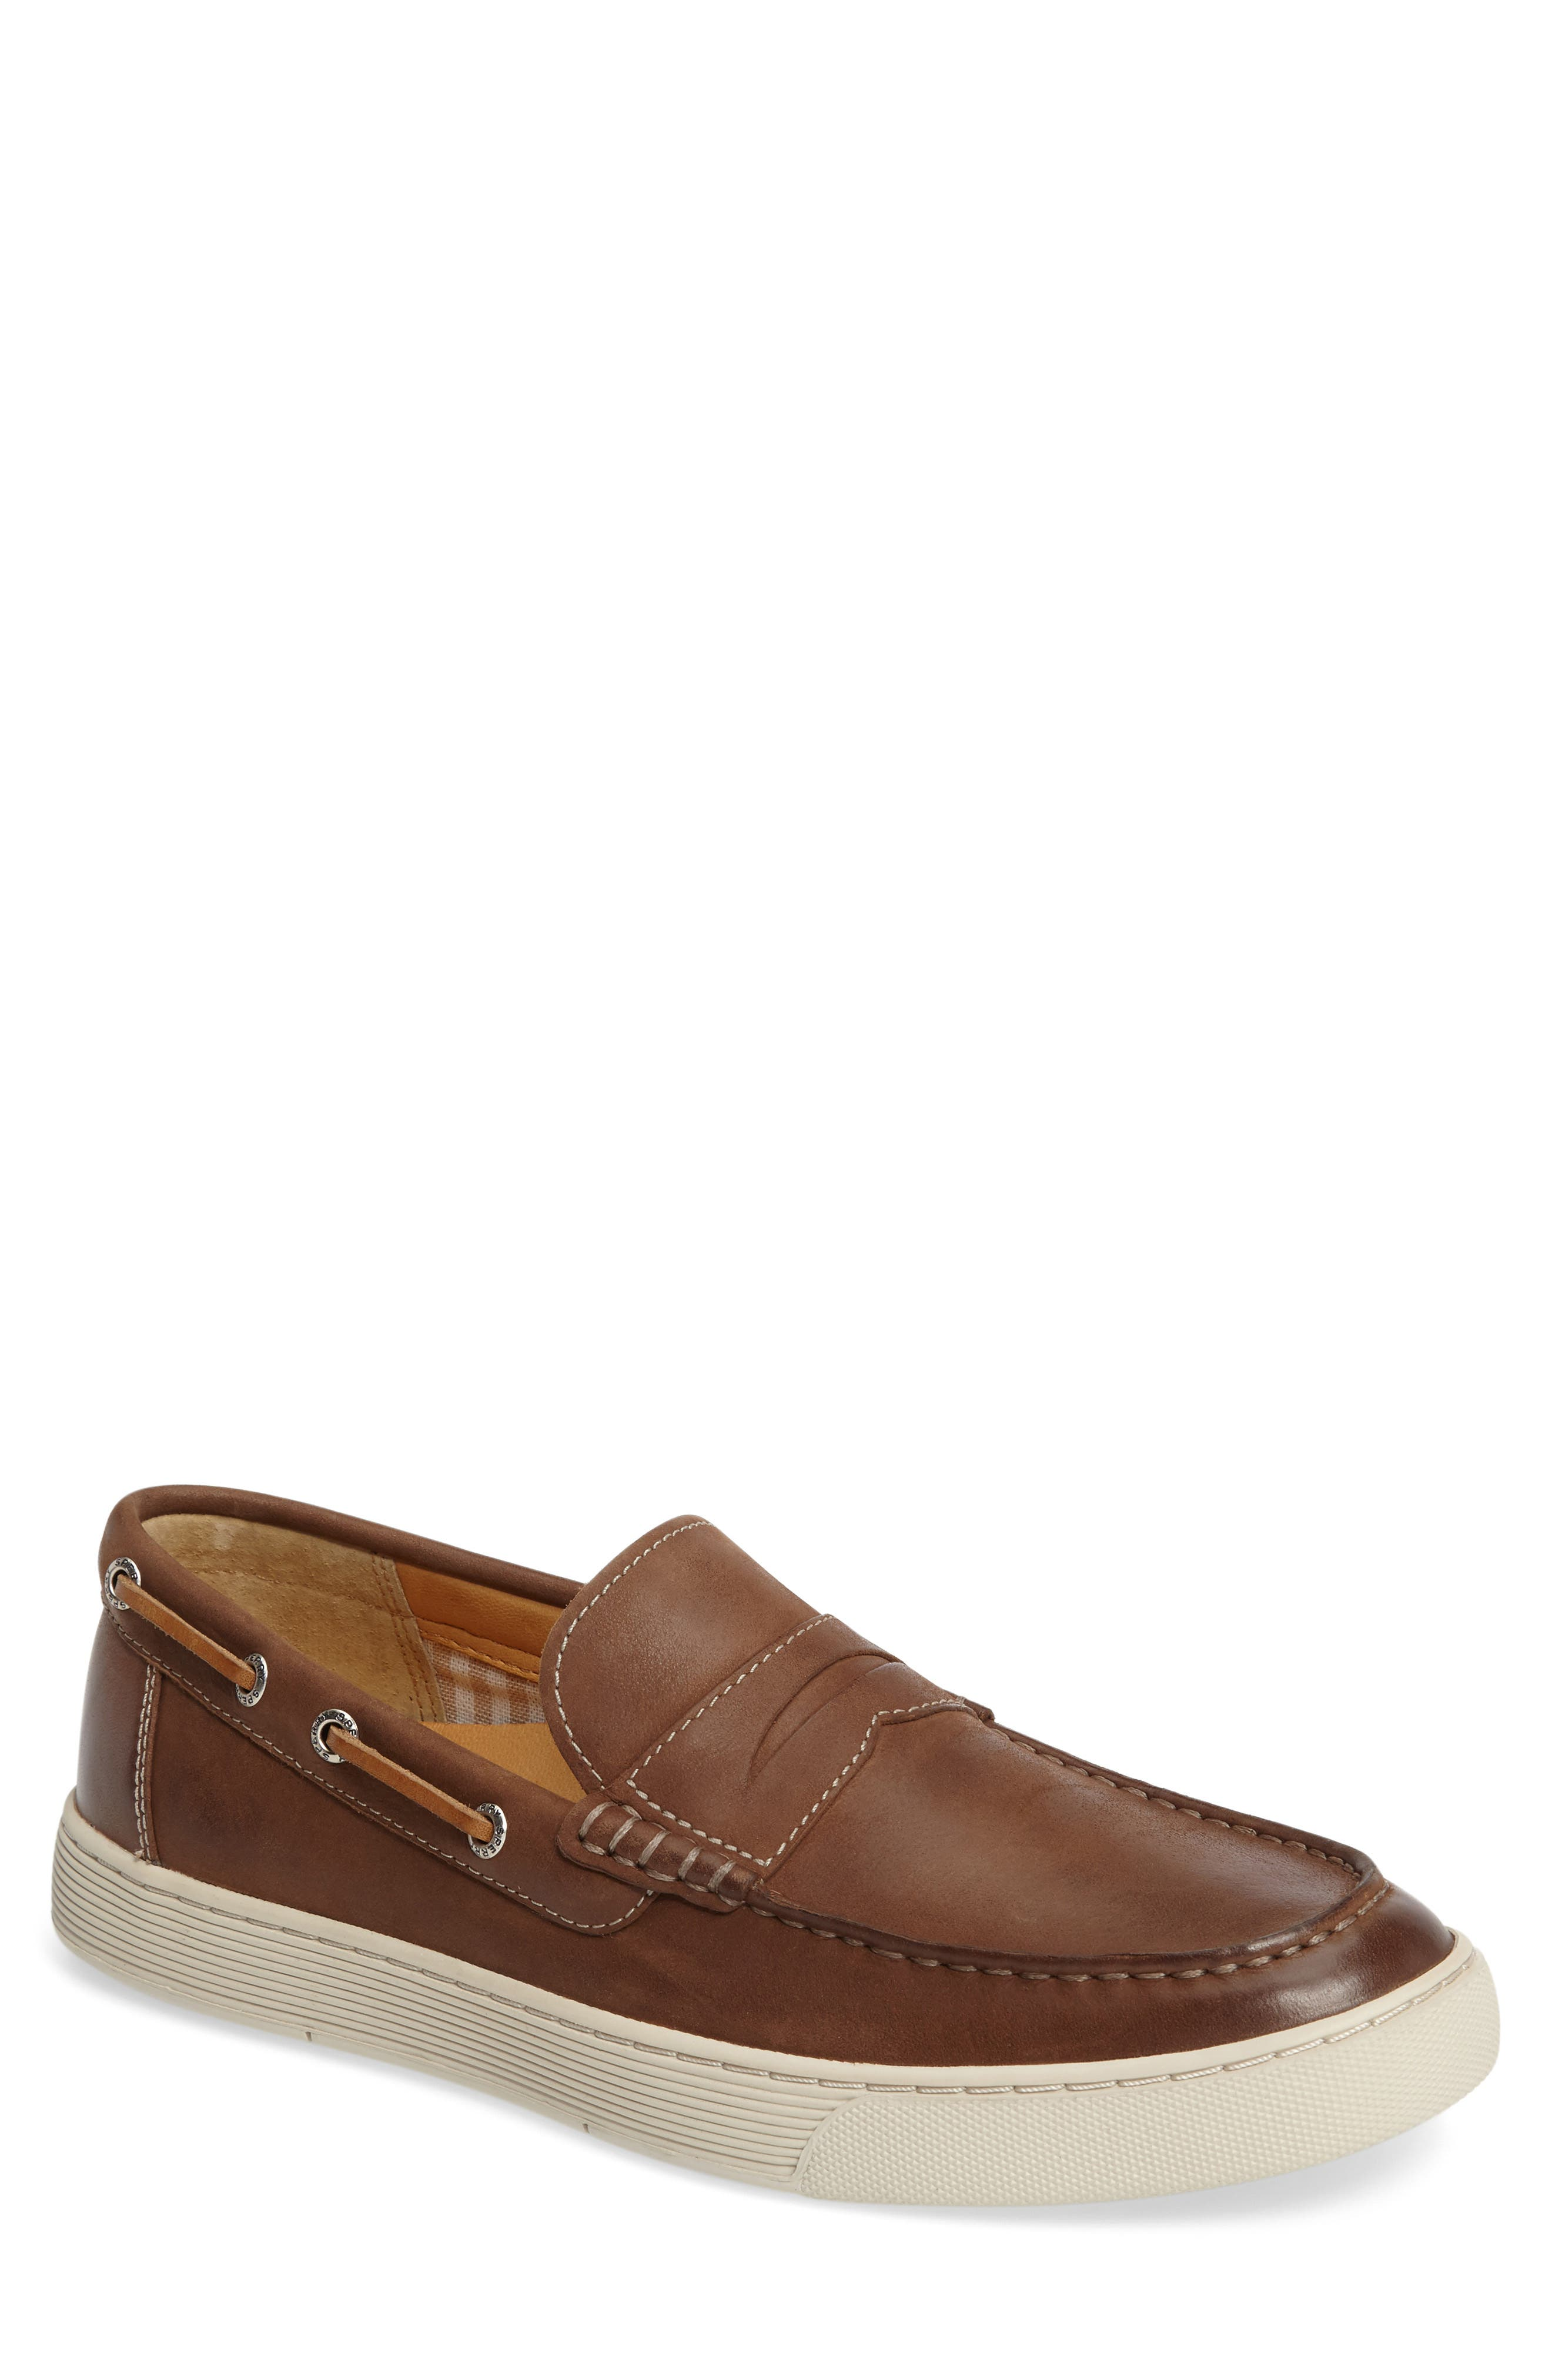 Sperry Gold Cup Penny Loafer (Men)